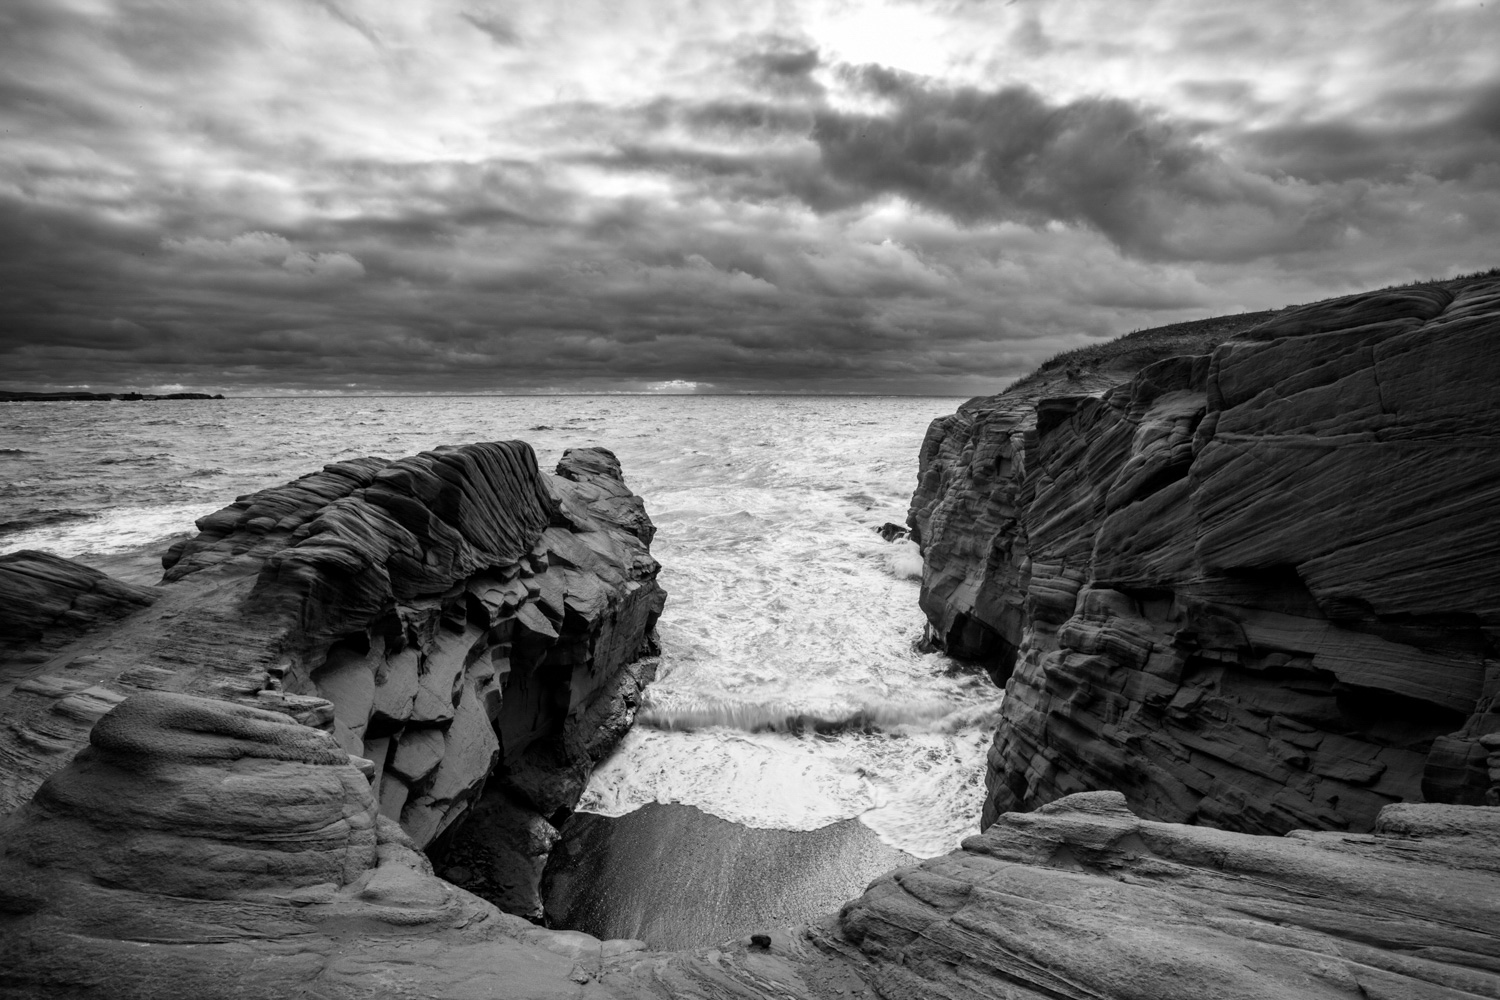 Landscape photo in the Magdalen Islands - Storm over the Borgot